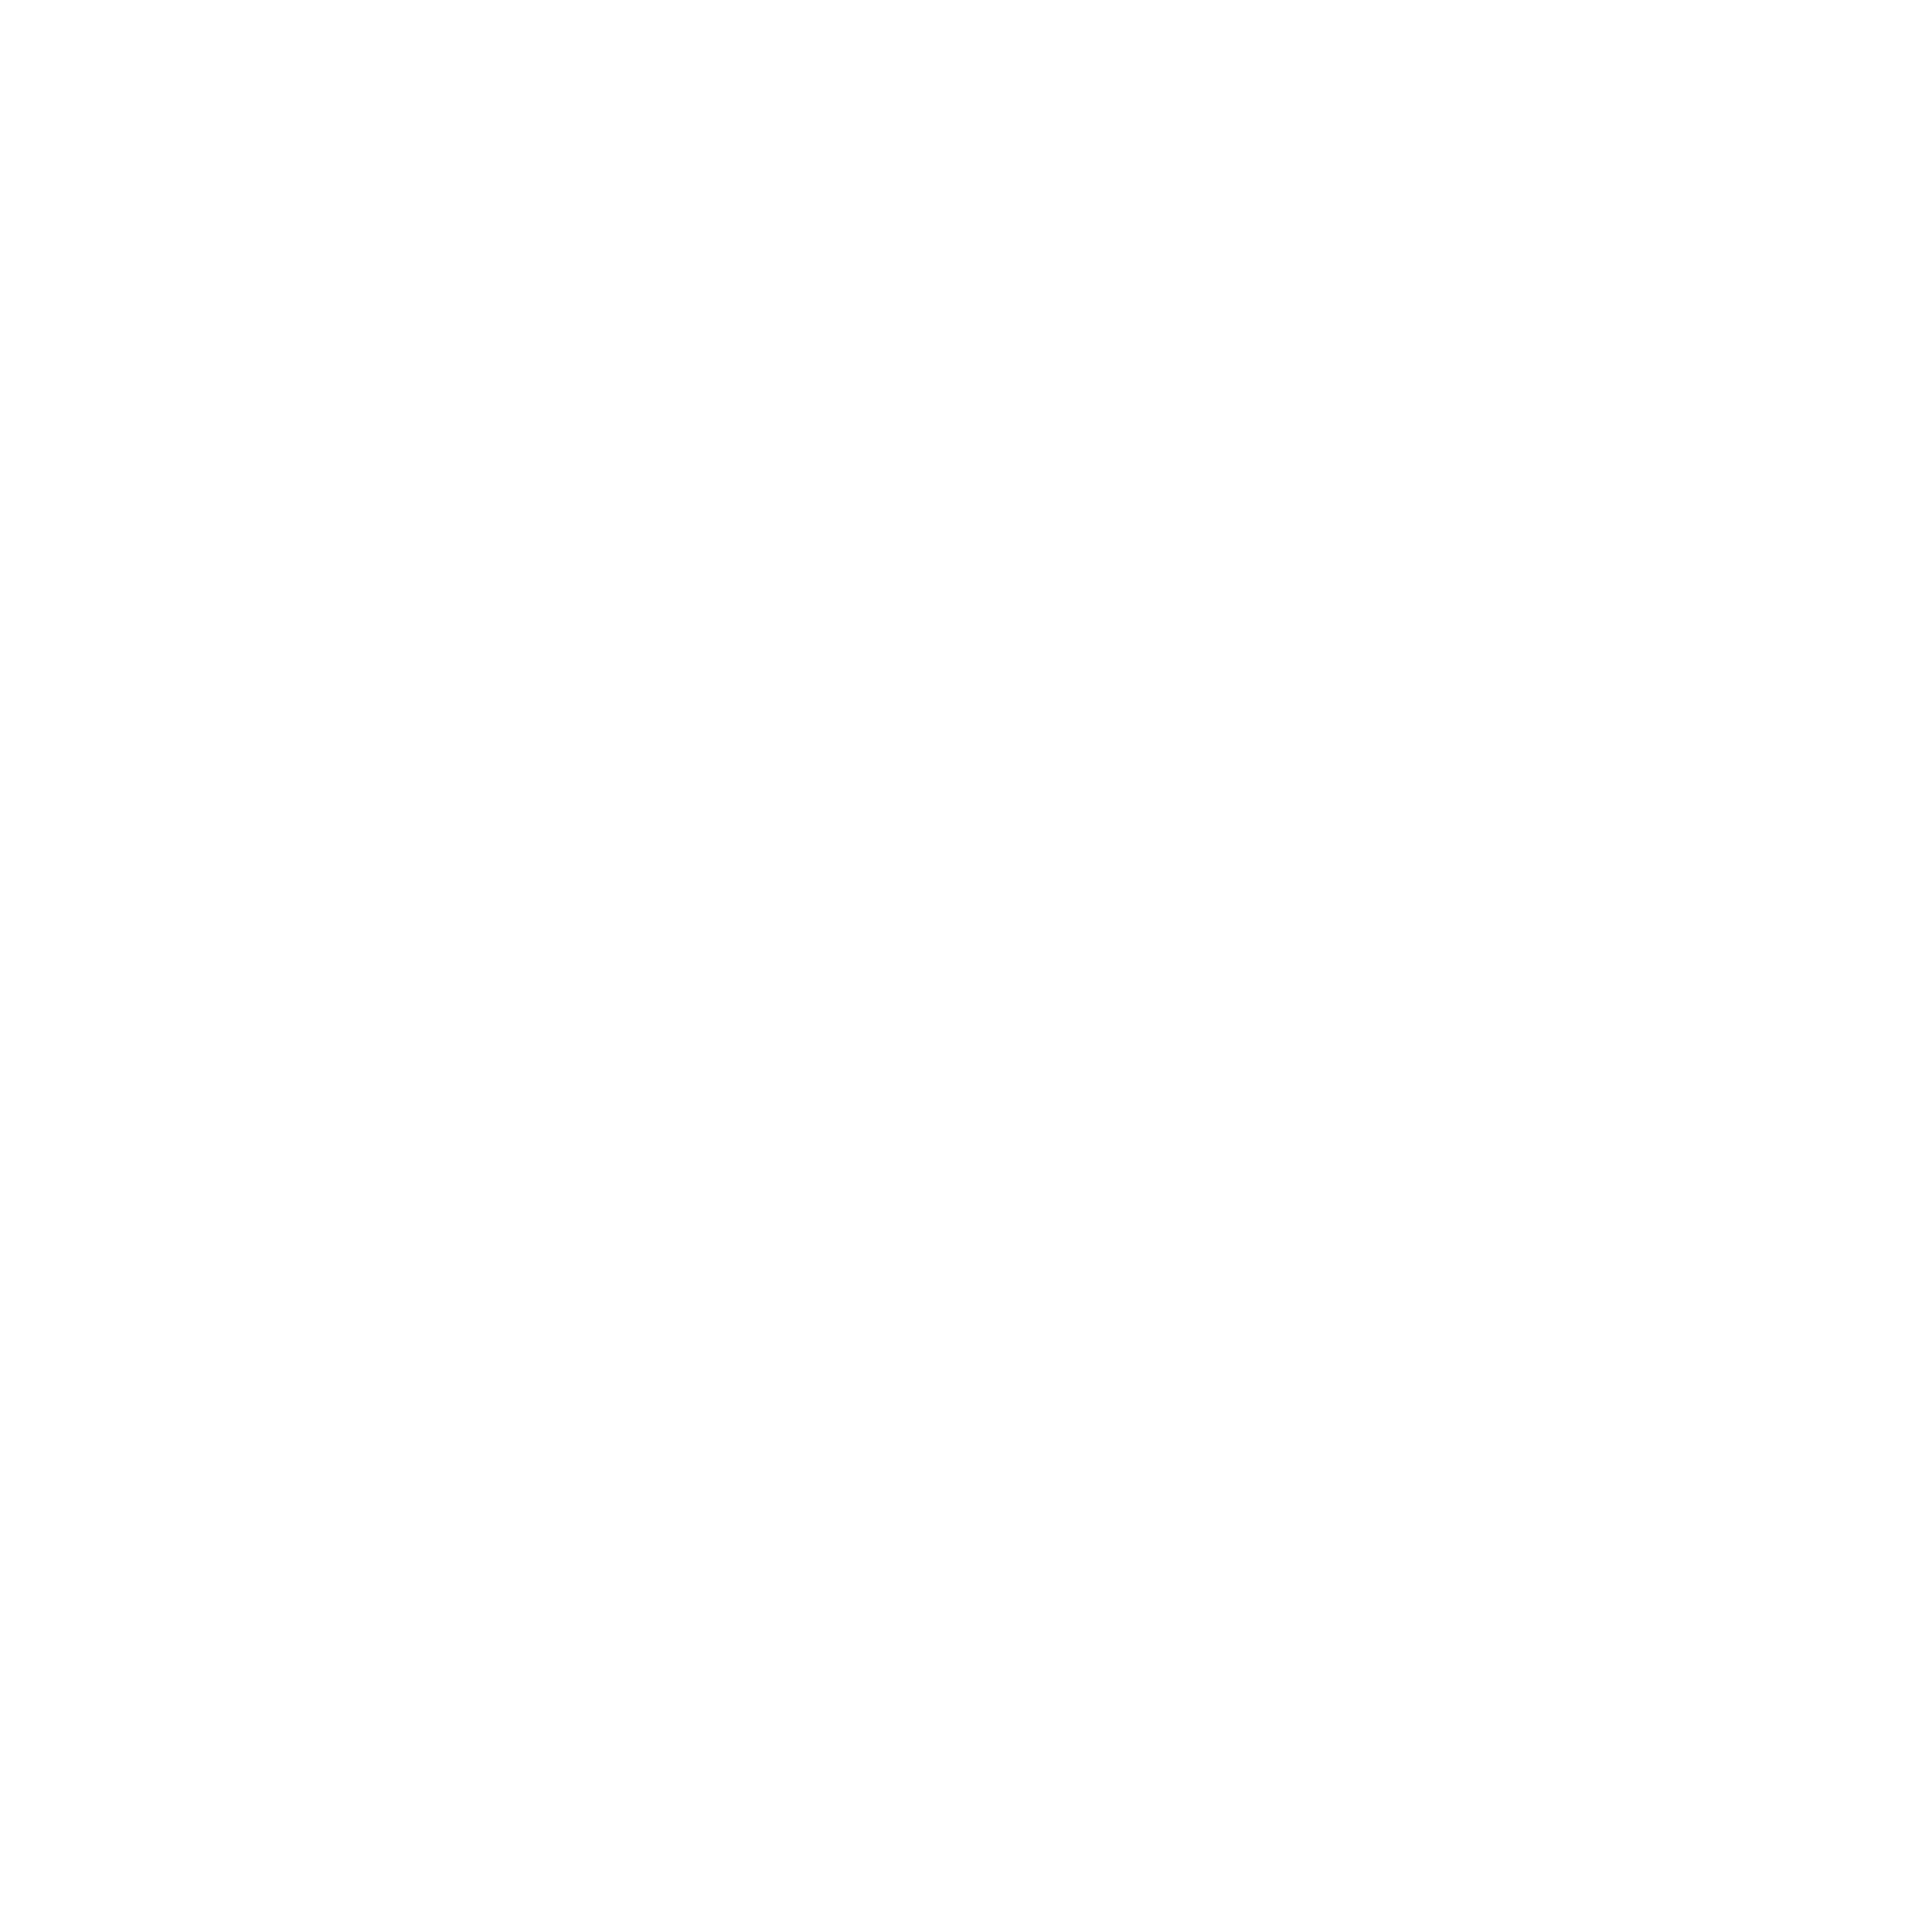 four people sitting around a table icon